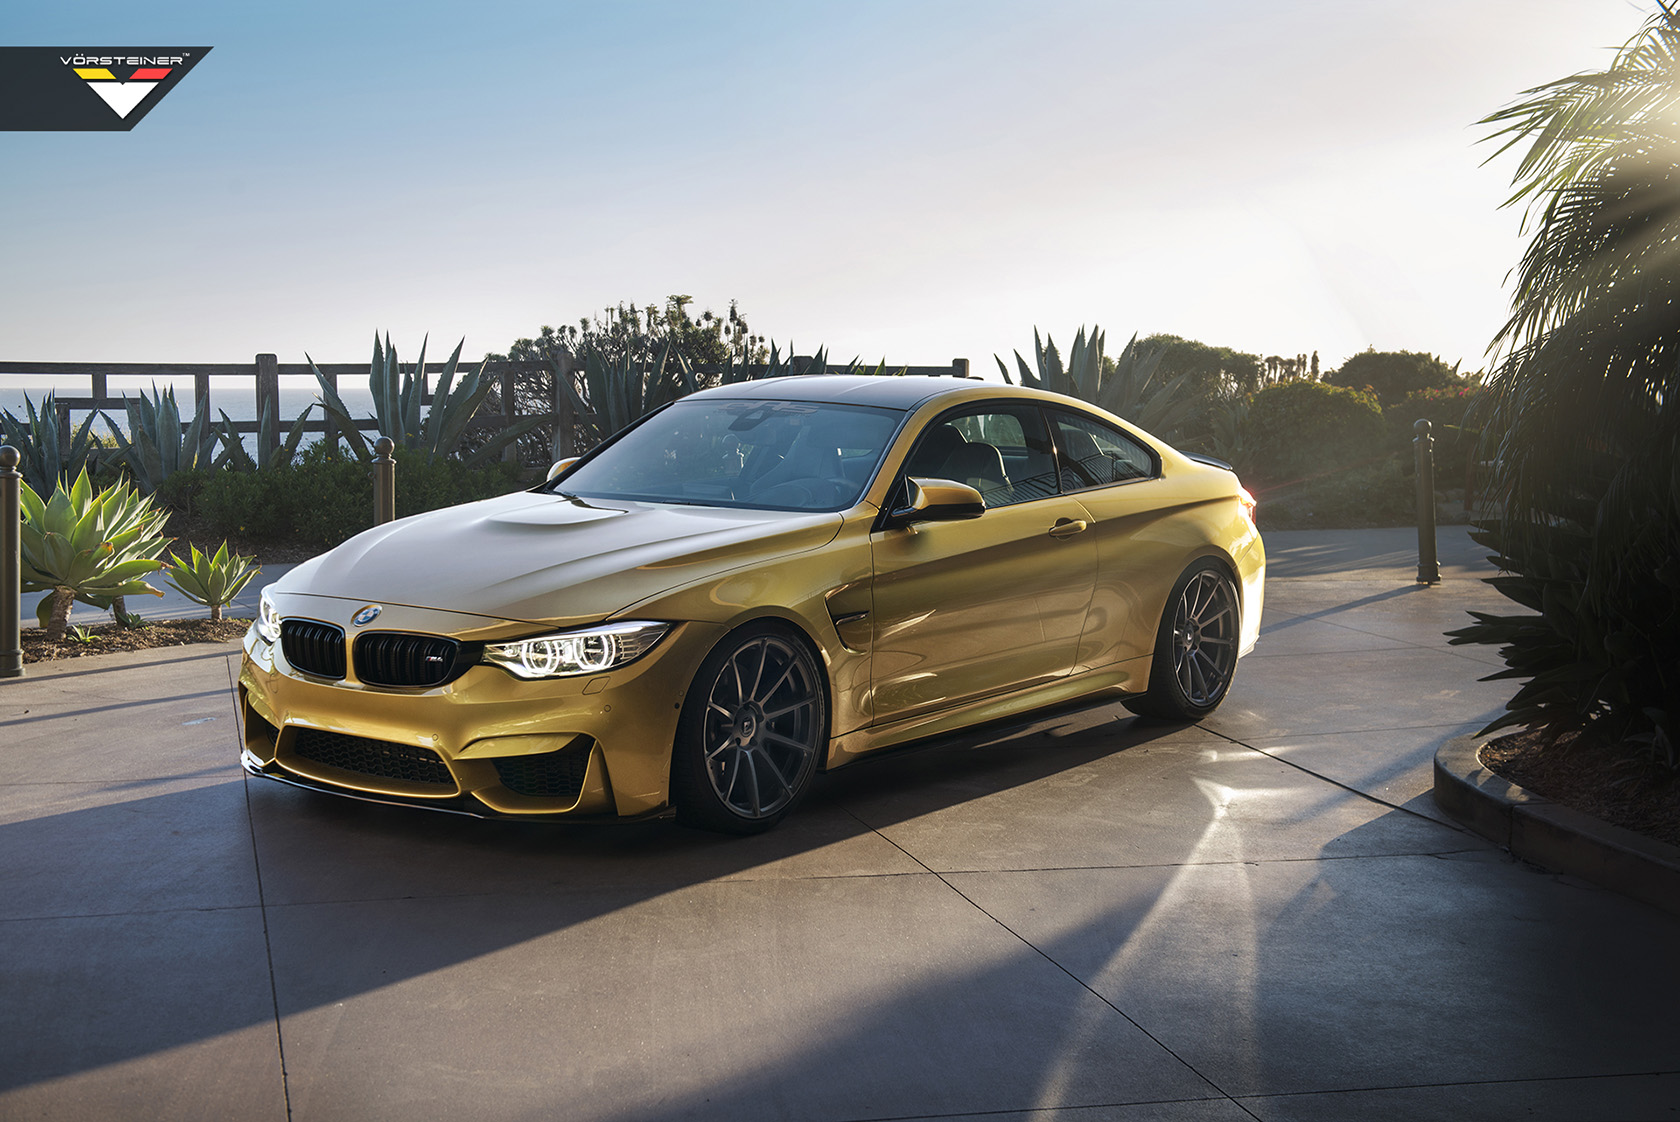 F82 BMW M4 by Vorsteiner Wheels (6)